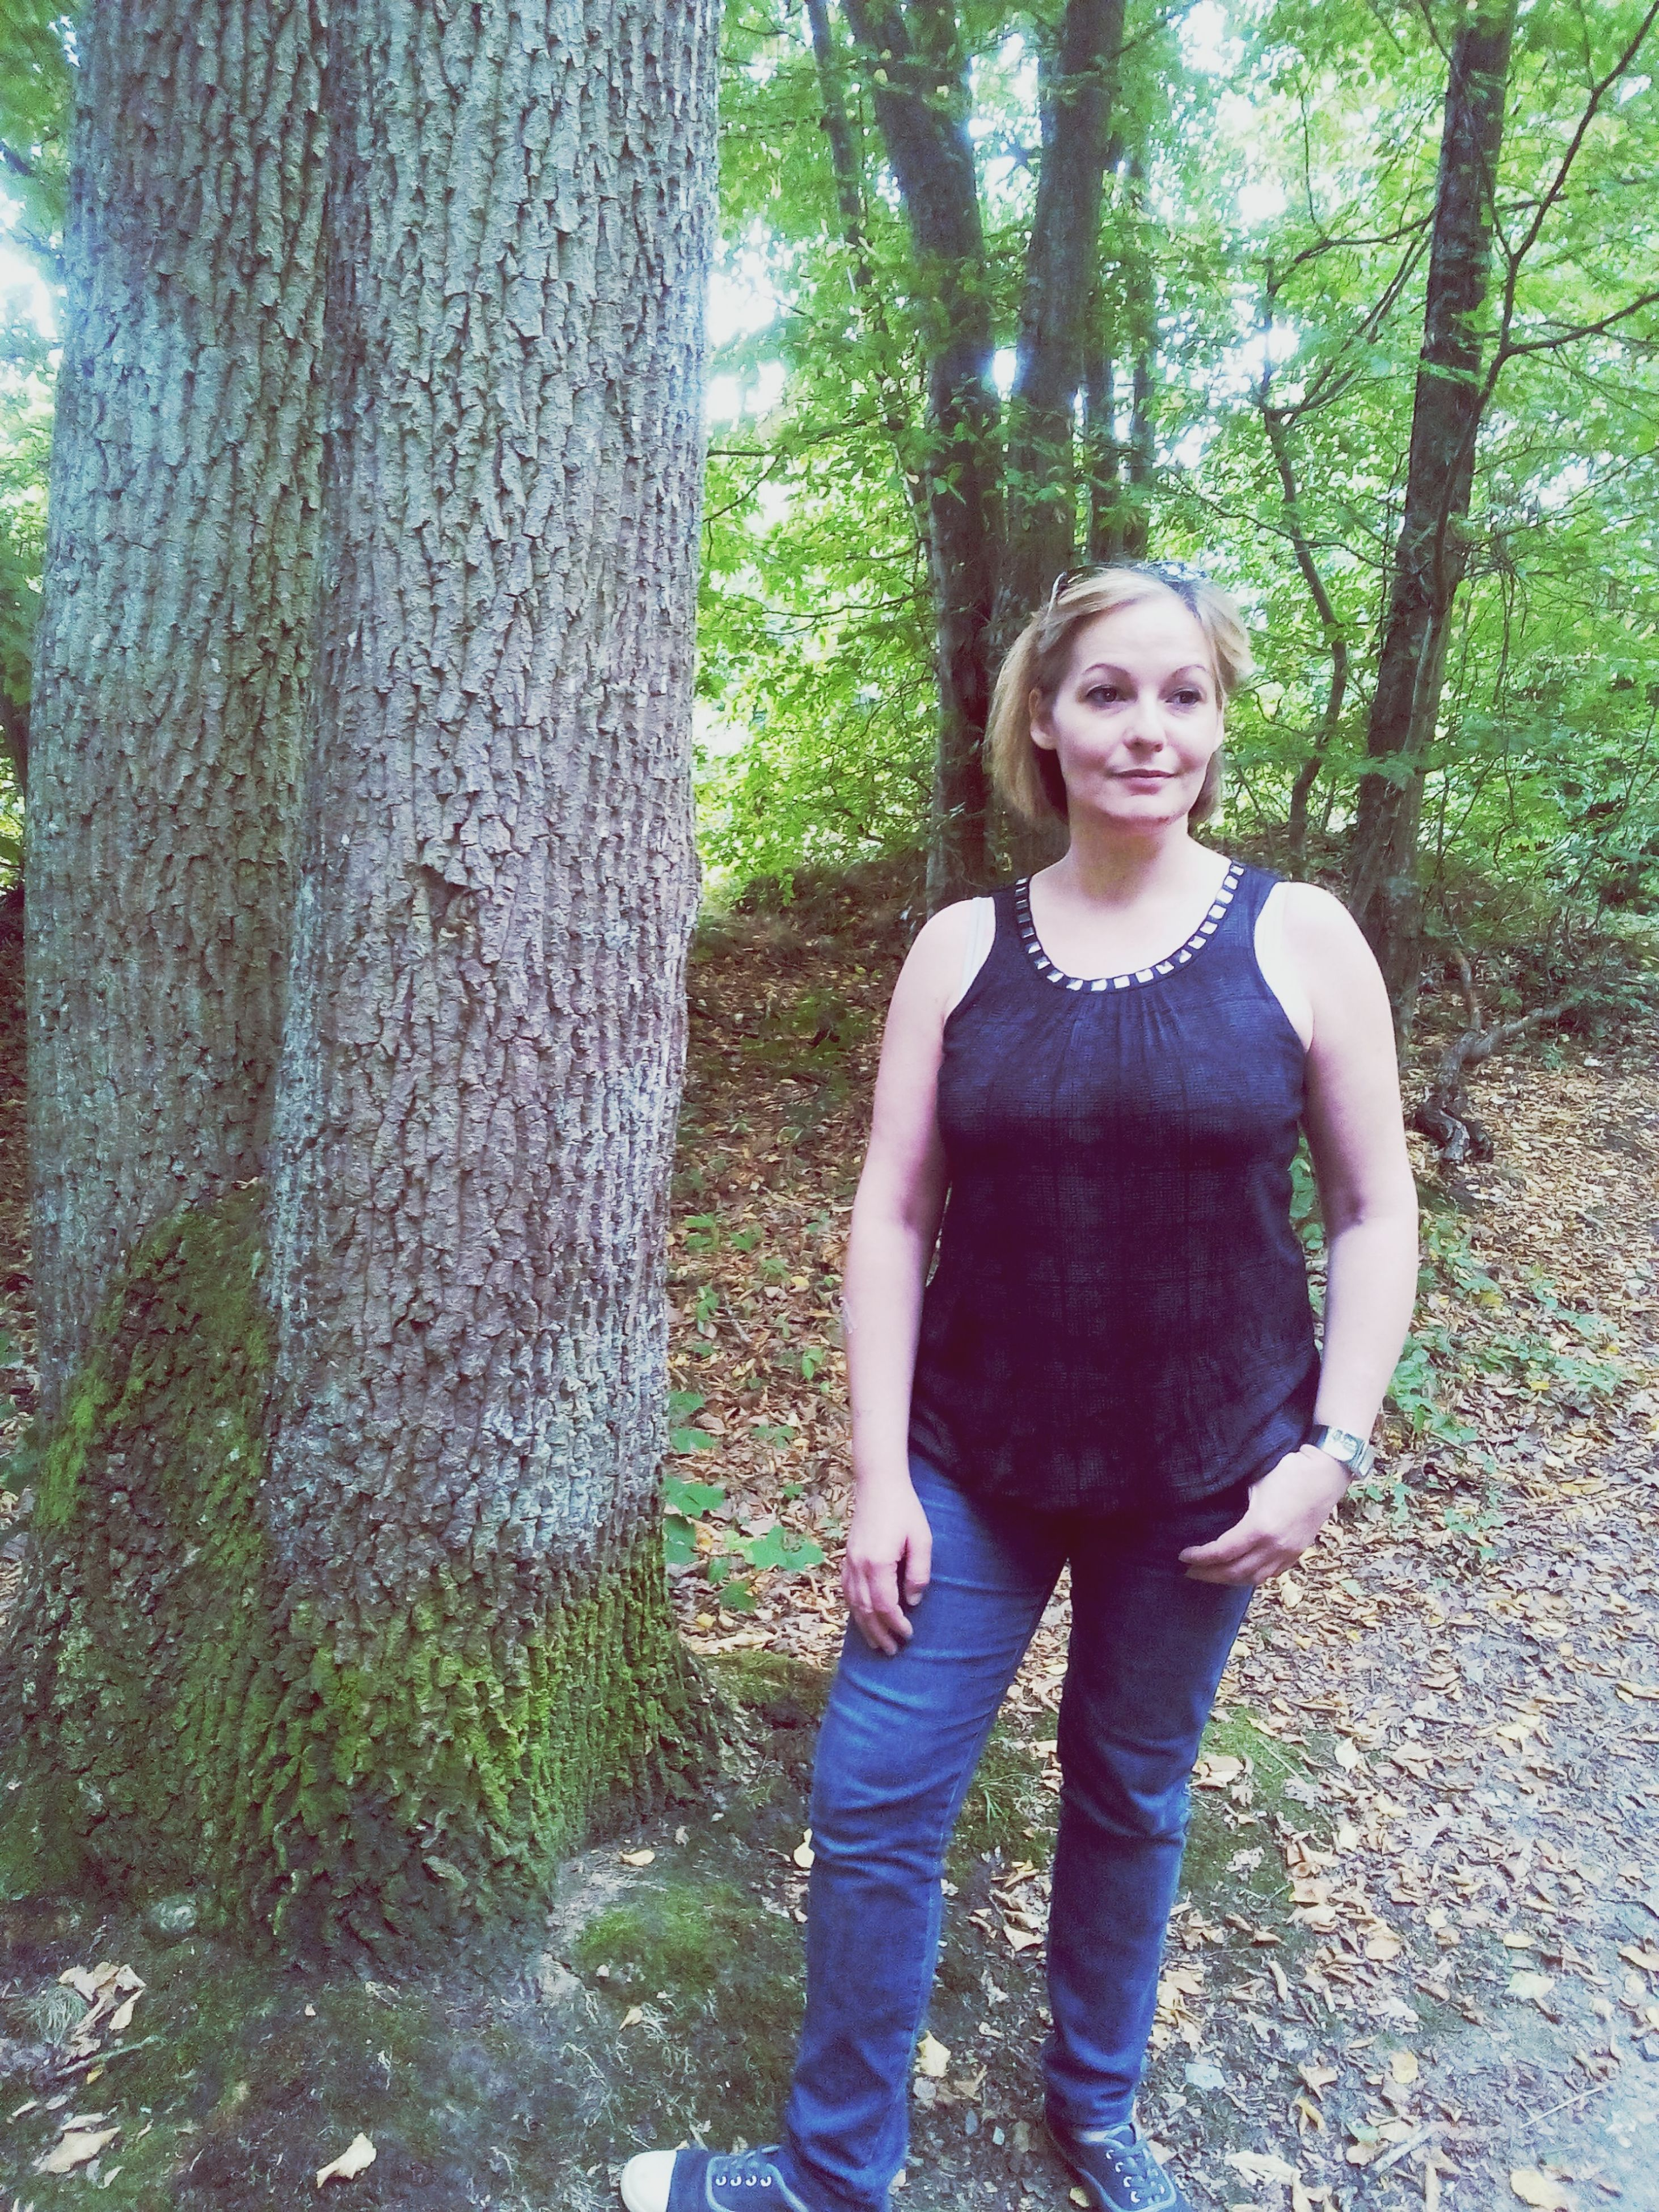 tree, person, lifestyles, casual clothing, standing, young adult, leisure activity, front view, looking at camera, portrait, tree trunk, young women, smiling, three quarter length, growth, full length, forest, happiness